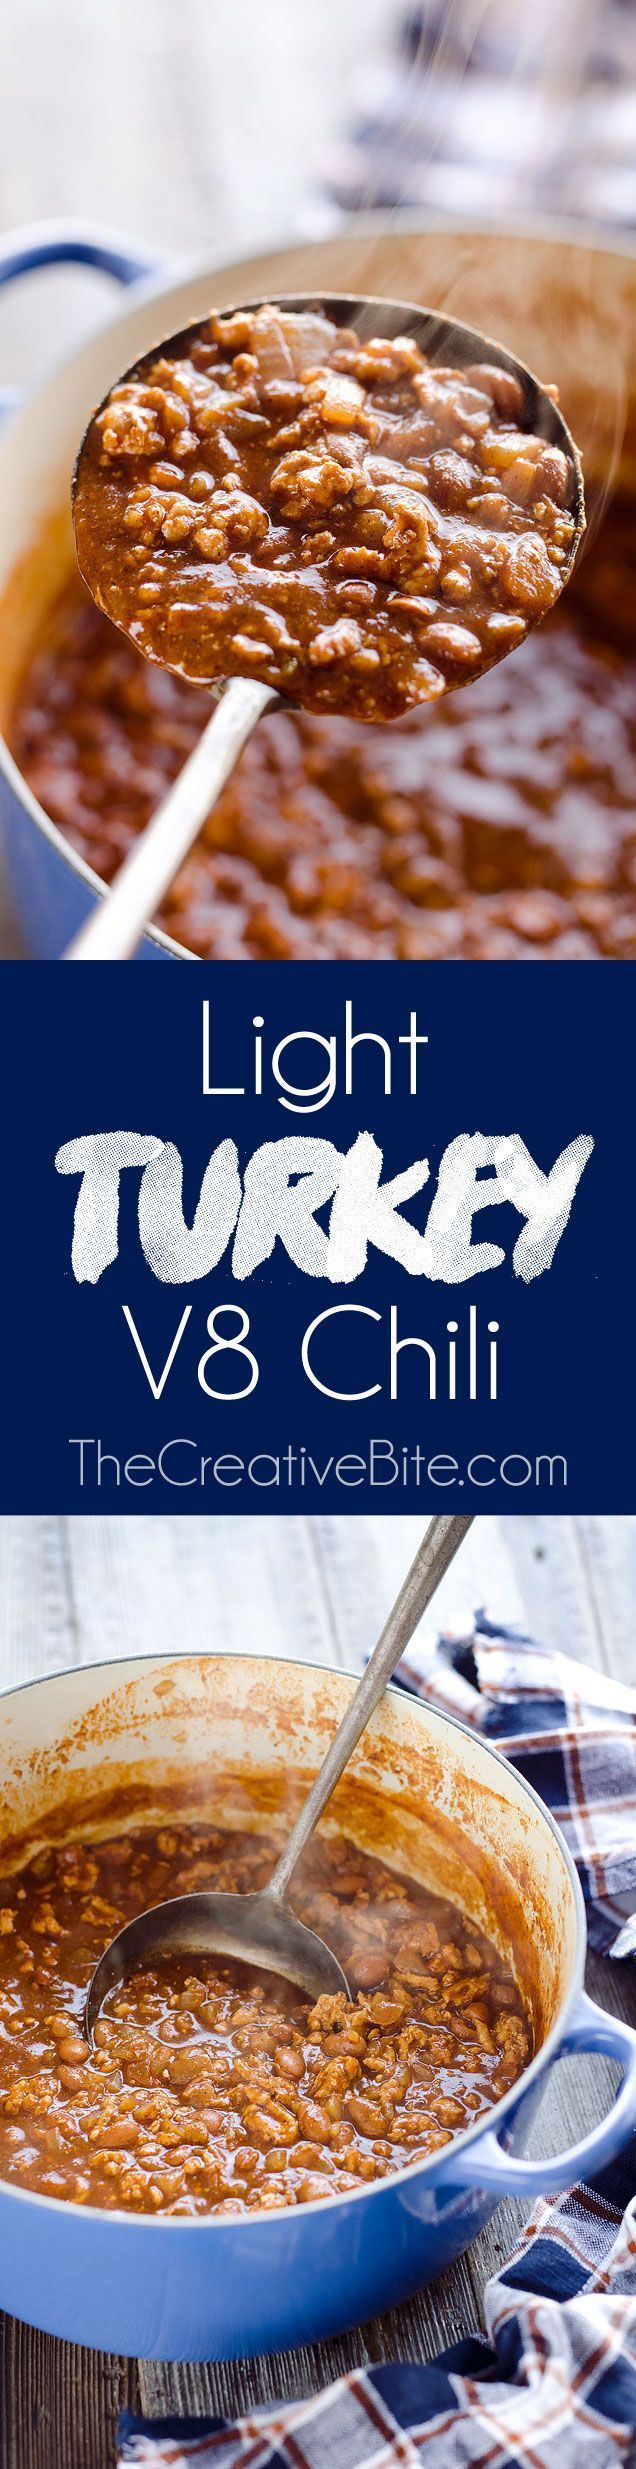 Light Turkey V8 Chili is an easy and healthy 20 minute weeknight dinner idea with only 6 ingredients and a whole lot of flavor. This dish is loaded with nutrition from V8 juice, lean ground turkey and beans for a hearty meal the whole family will love. An